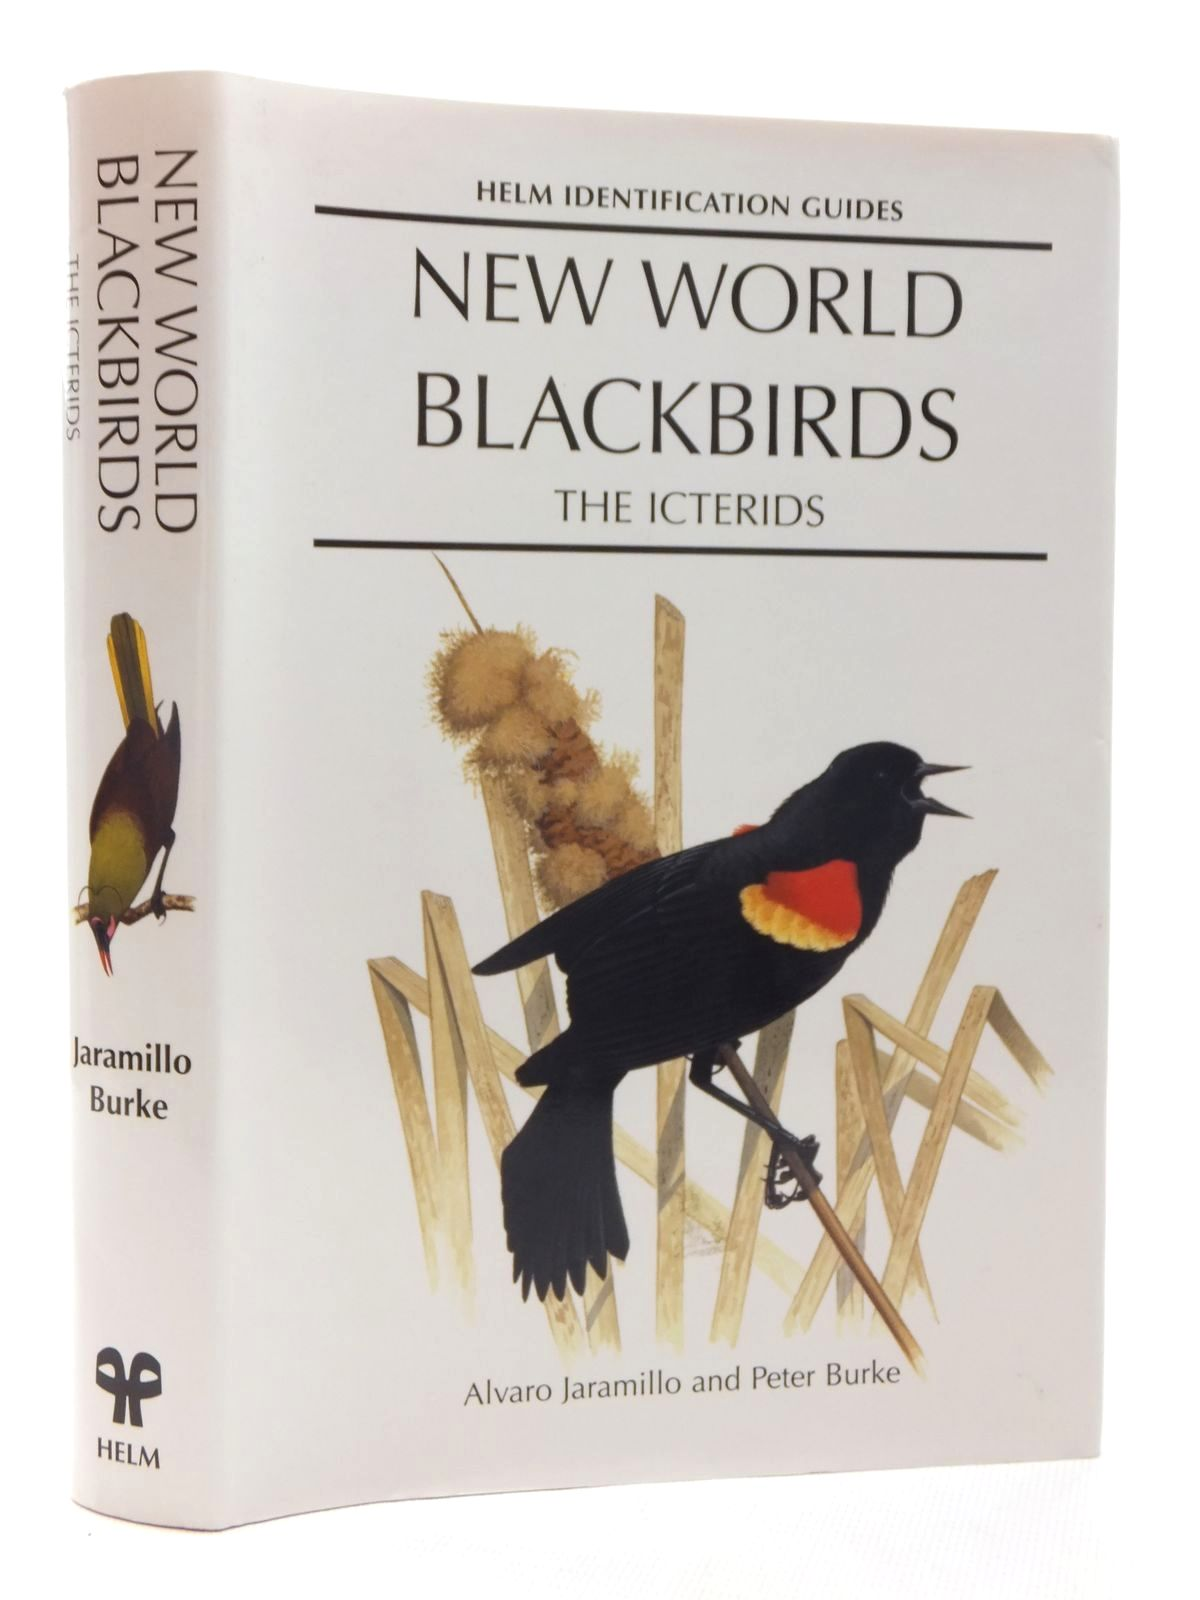 Photo of NEW WORLD BLACKBIRDS THE ICTERIDS (HELM IDENTIFICATION GUIDES)